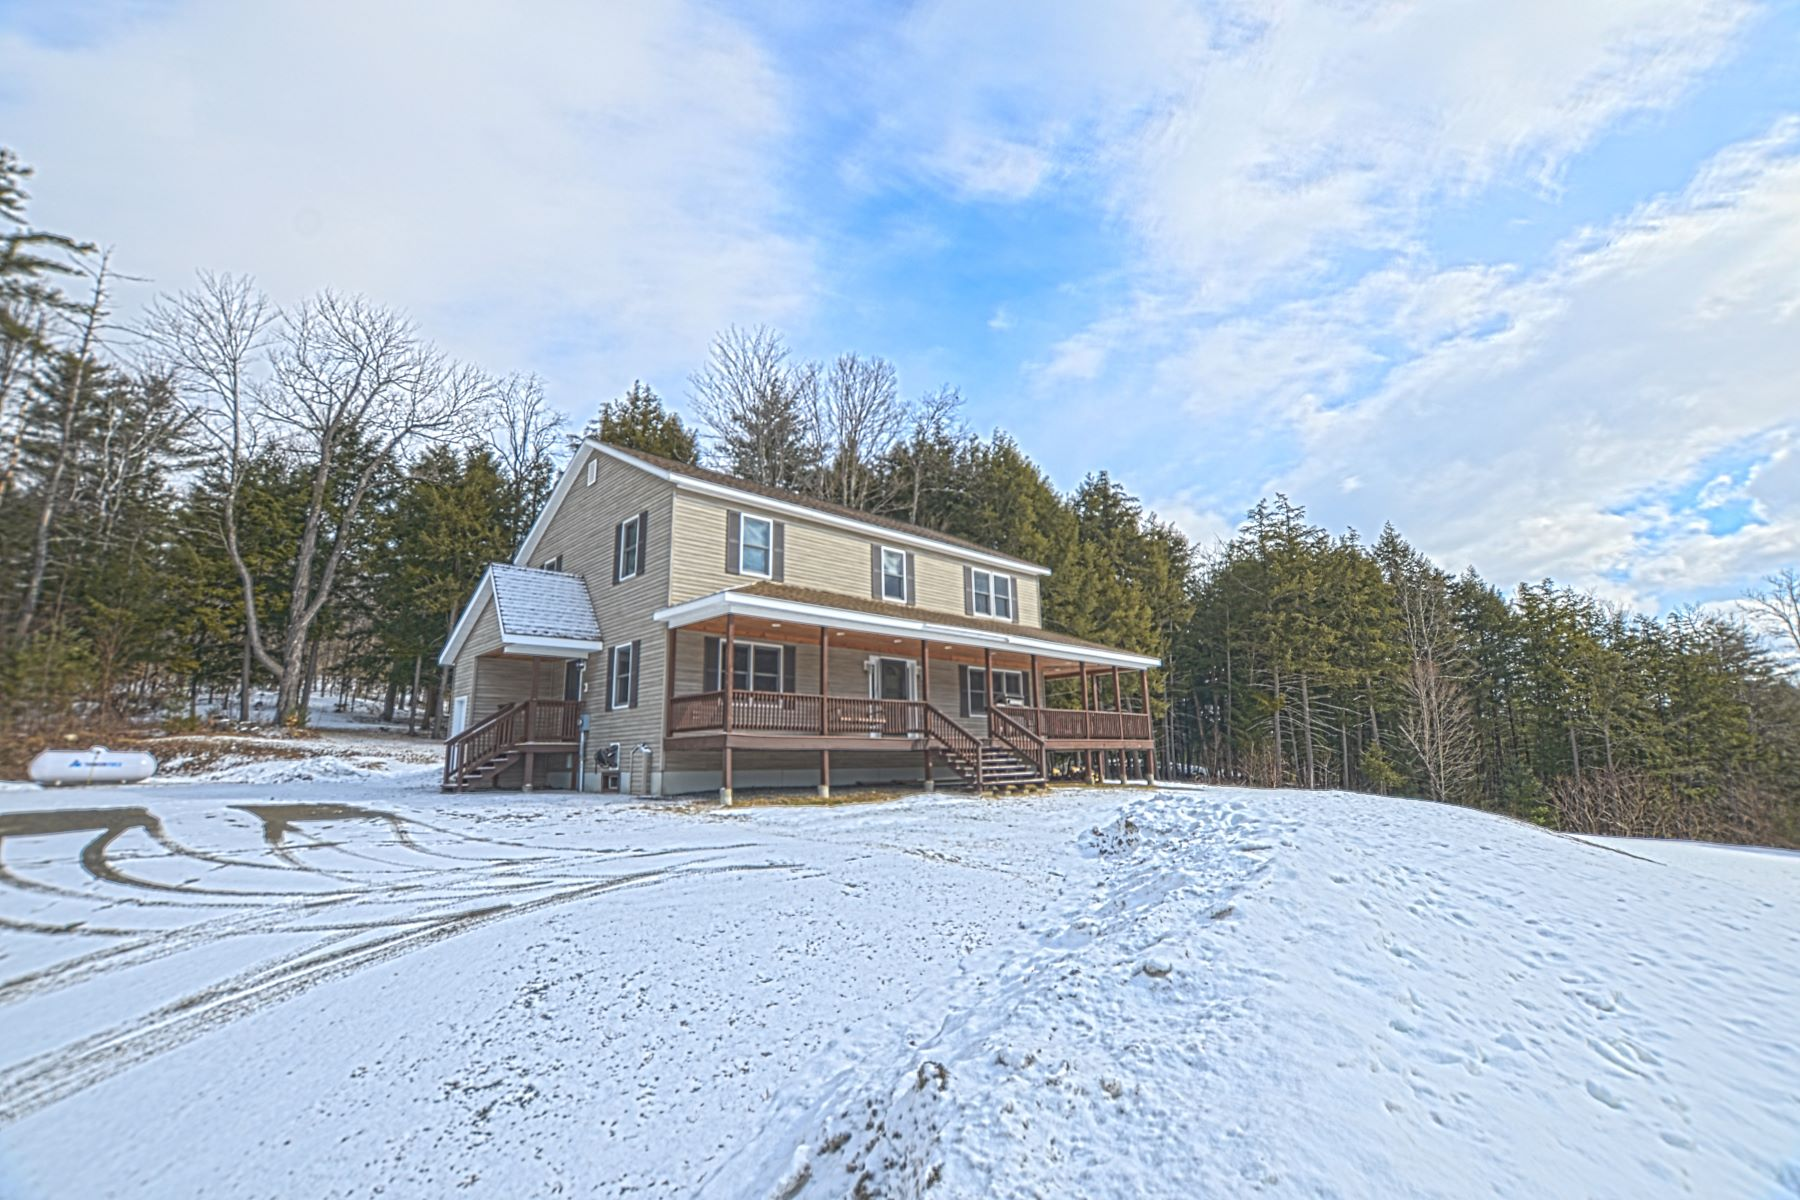 Single Family Home for Sale at 1024 Rowell Brook Road, Bradford 1024 Rowell Brook Rd Bradford, Vermont 05033 United States